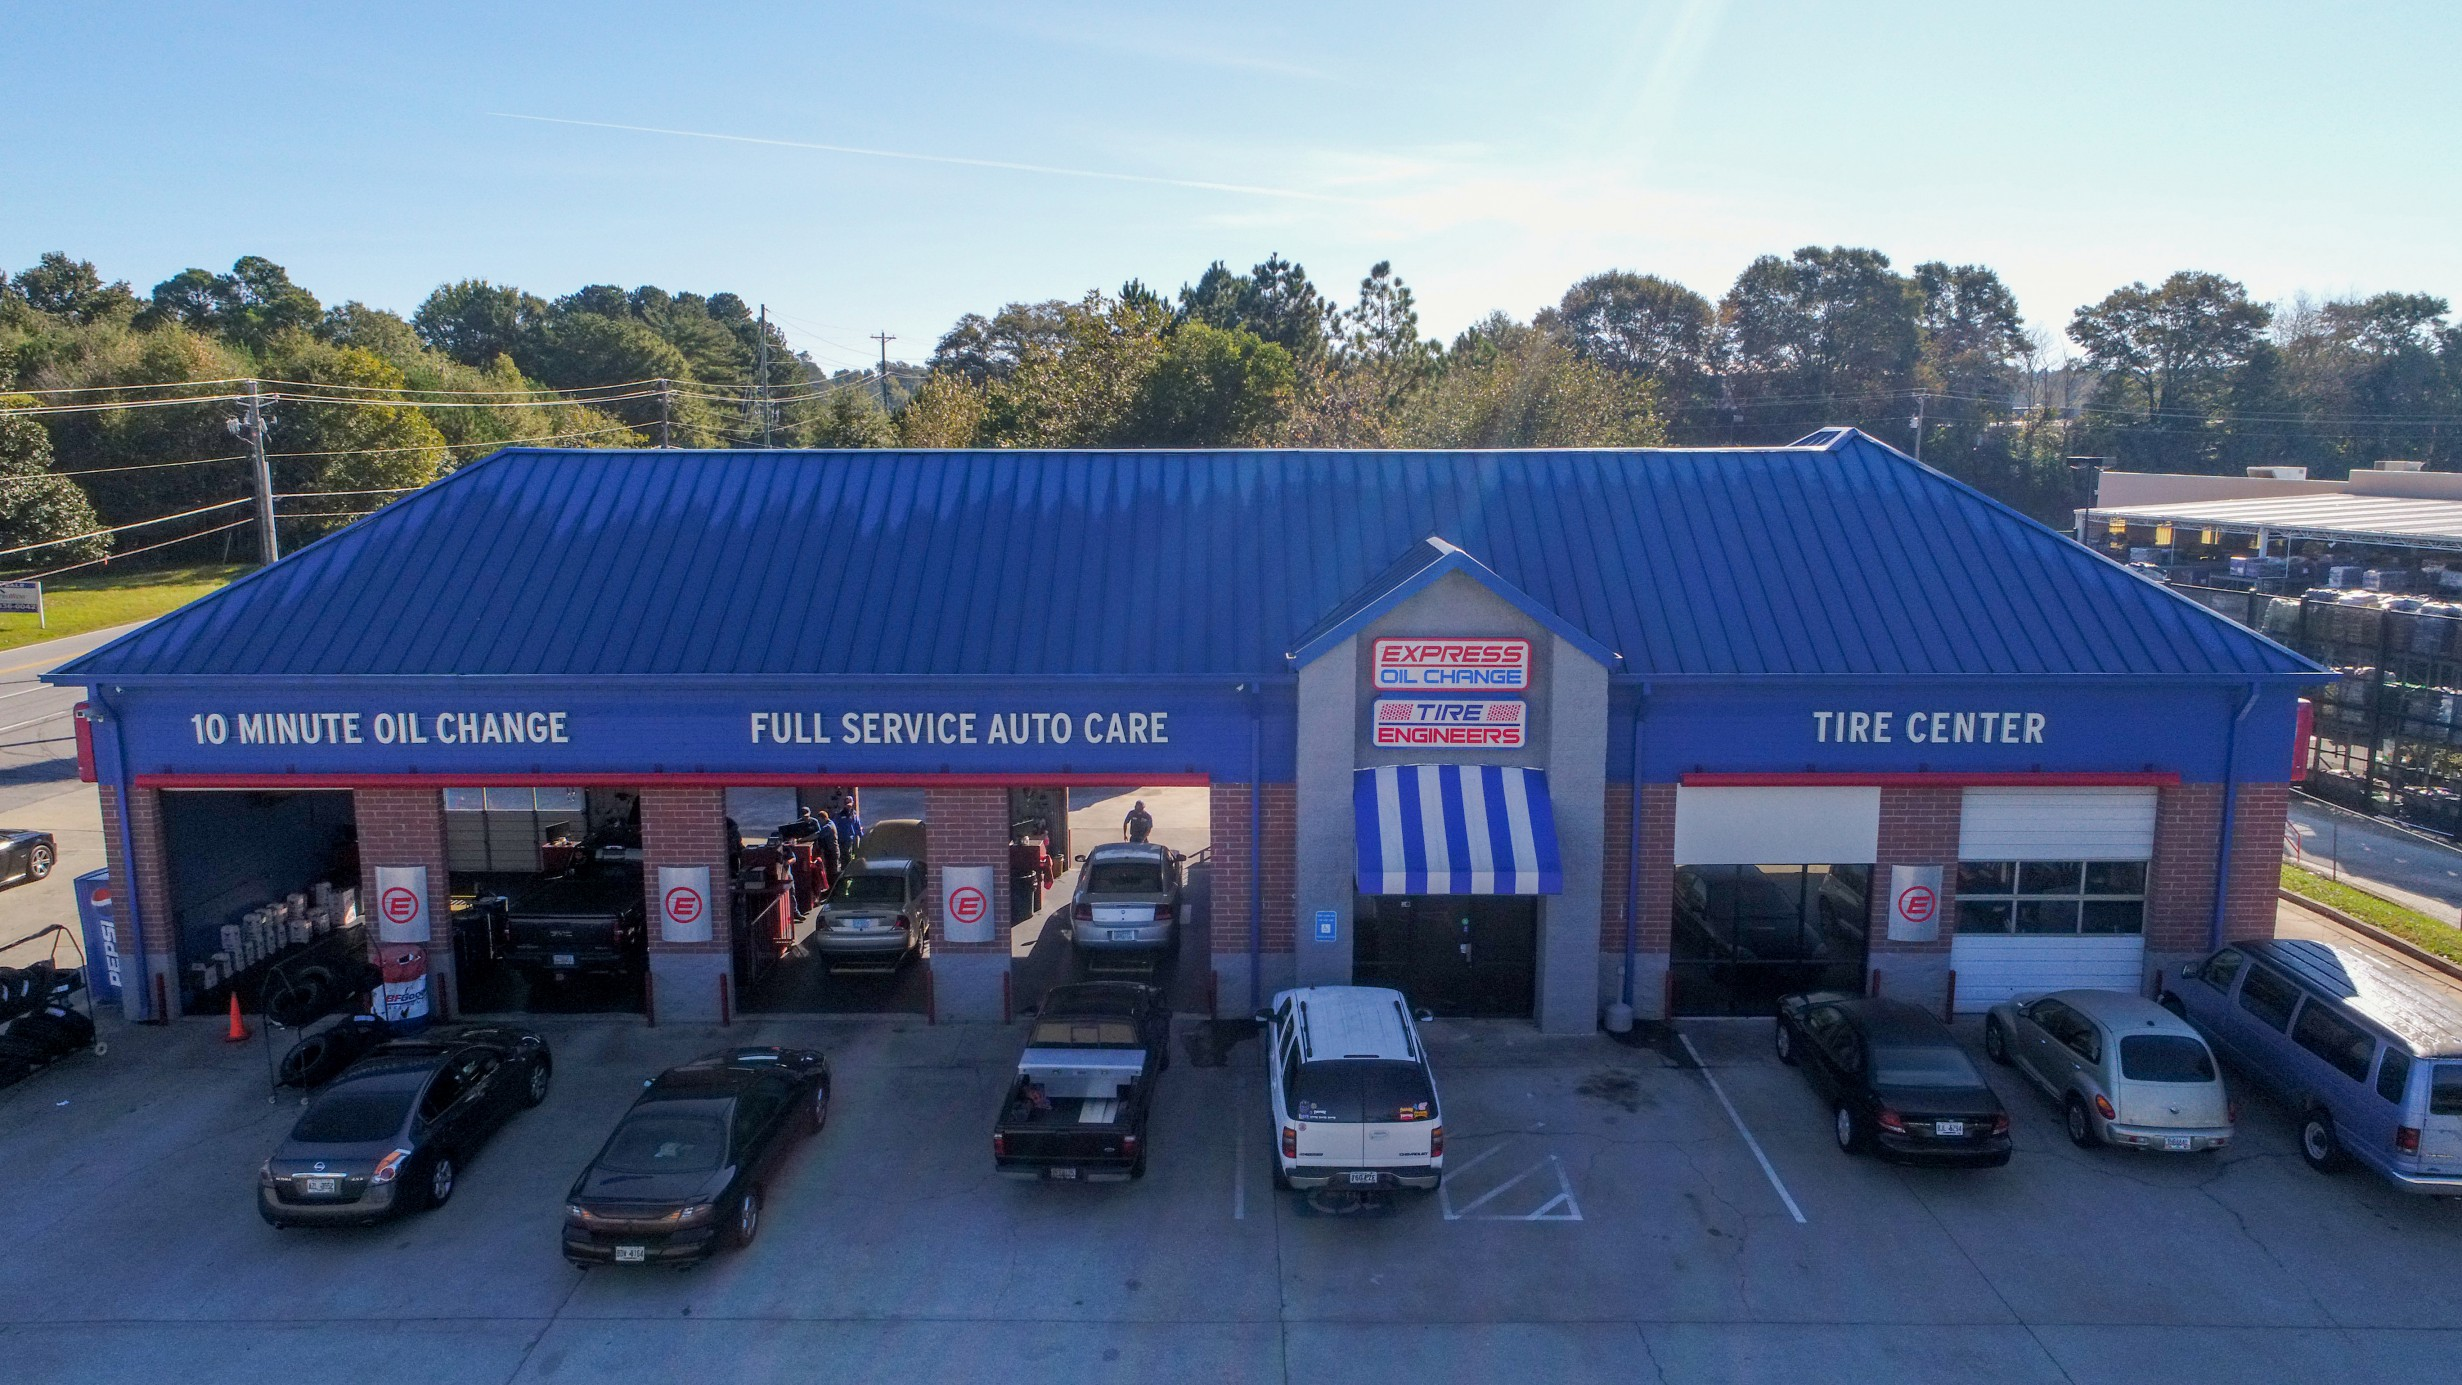 express oil change Carrollton, GA - Central High Road store photo